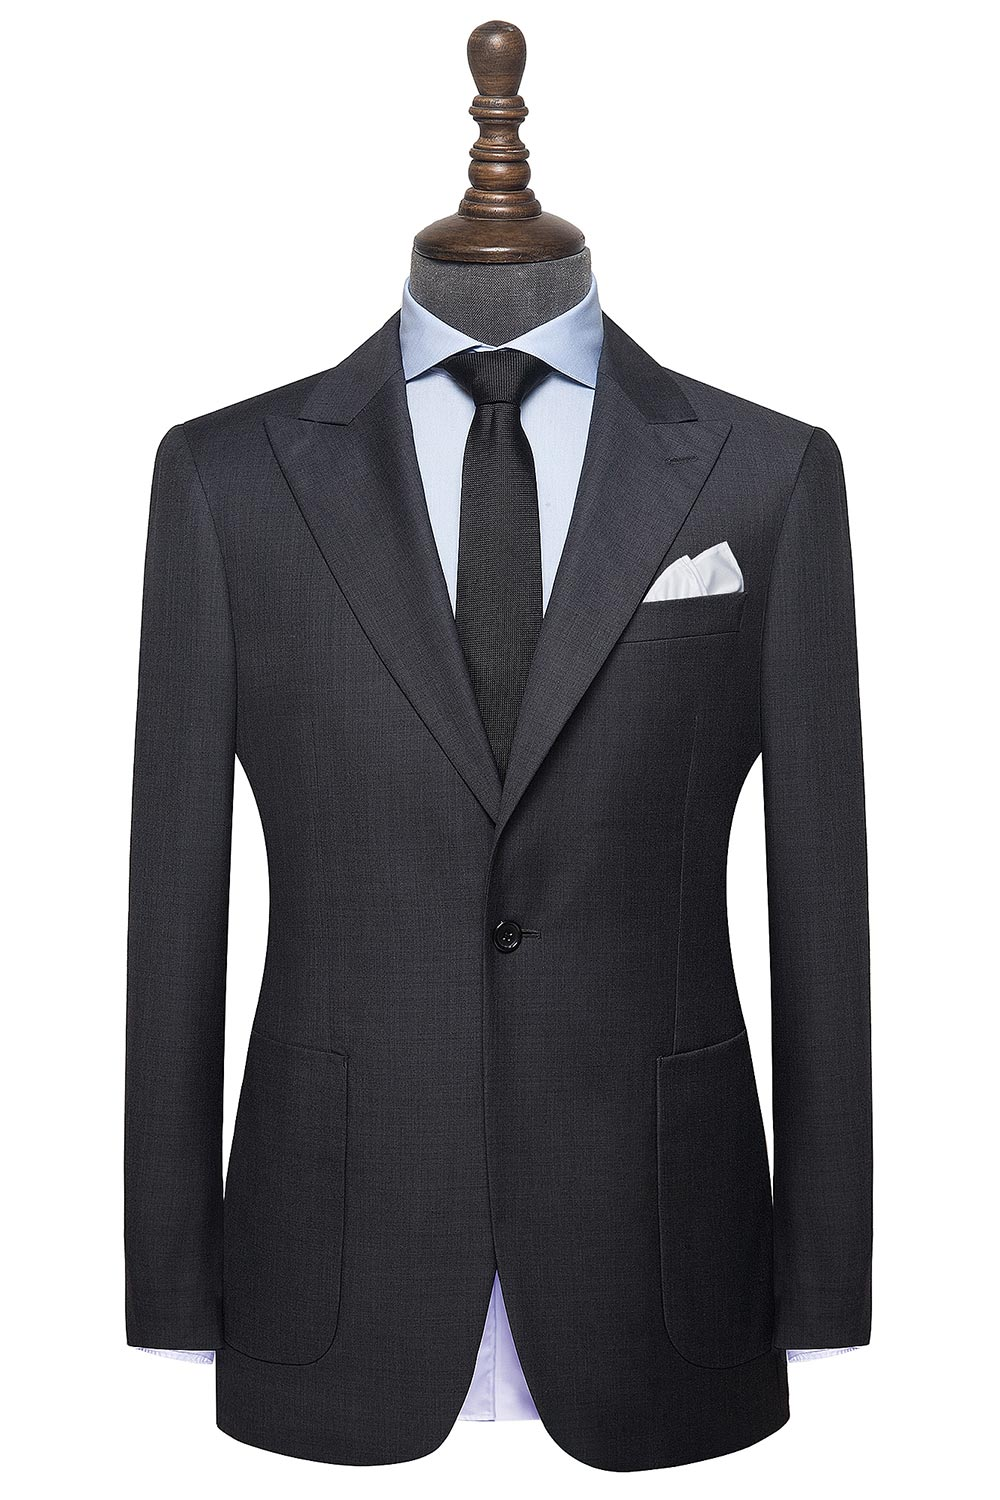 InStitchu Collection The Yately mens suit